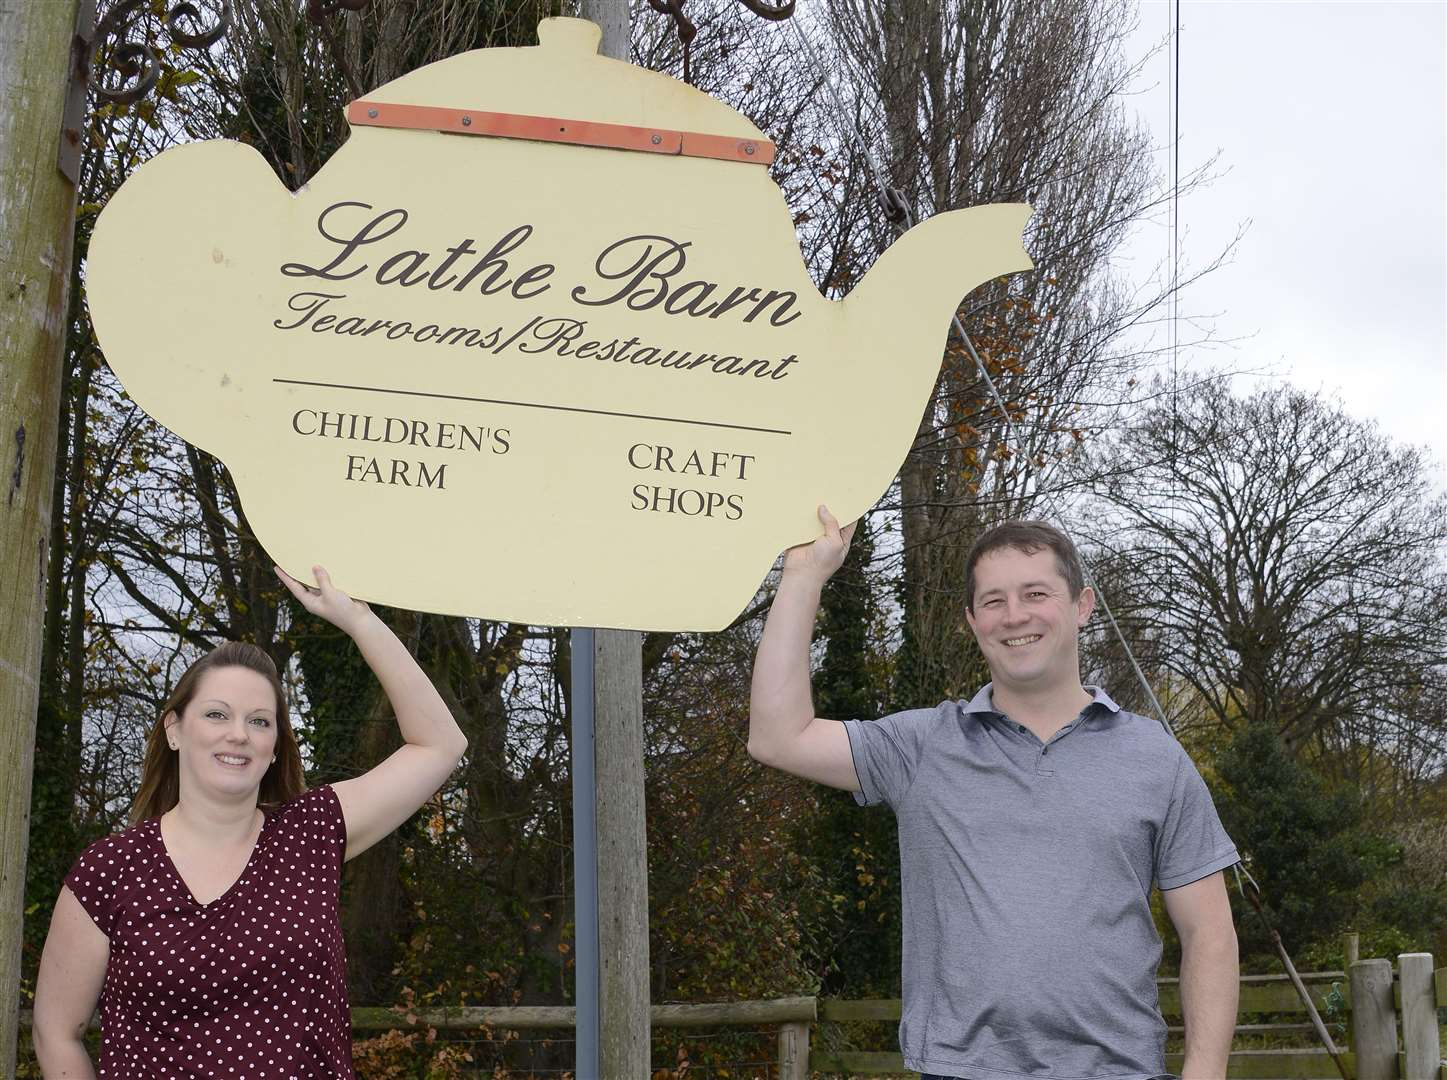 Lathe Barn was taken over by Katy and James Beck last autumn but the business has been hit by cash flow problems